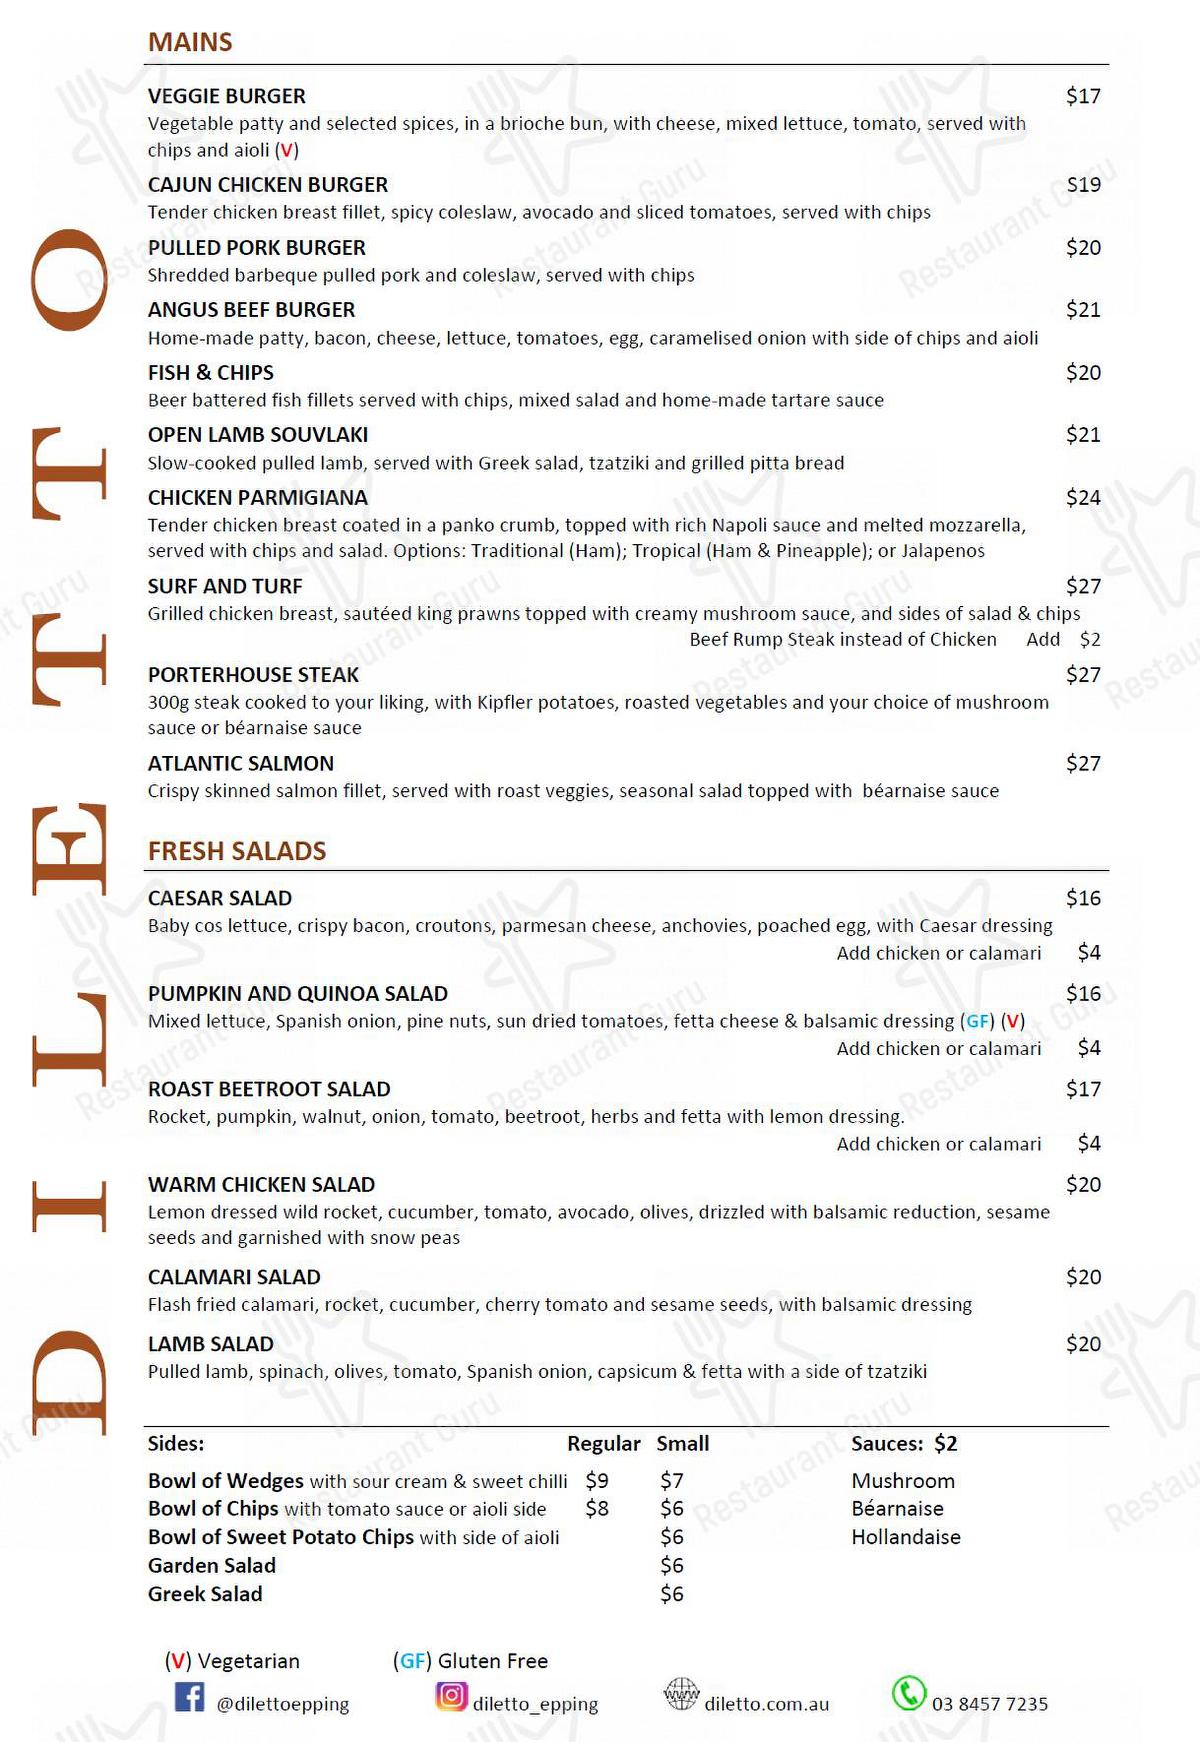 Diletto menu - meals and drinks